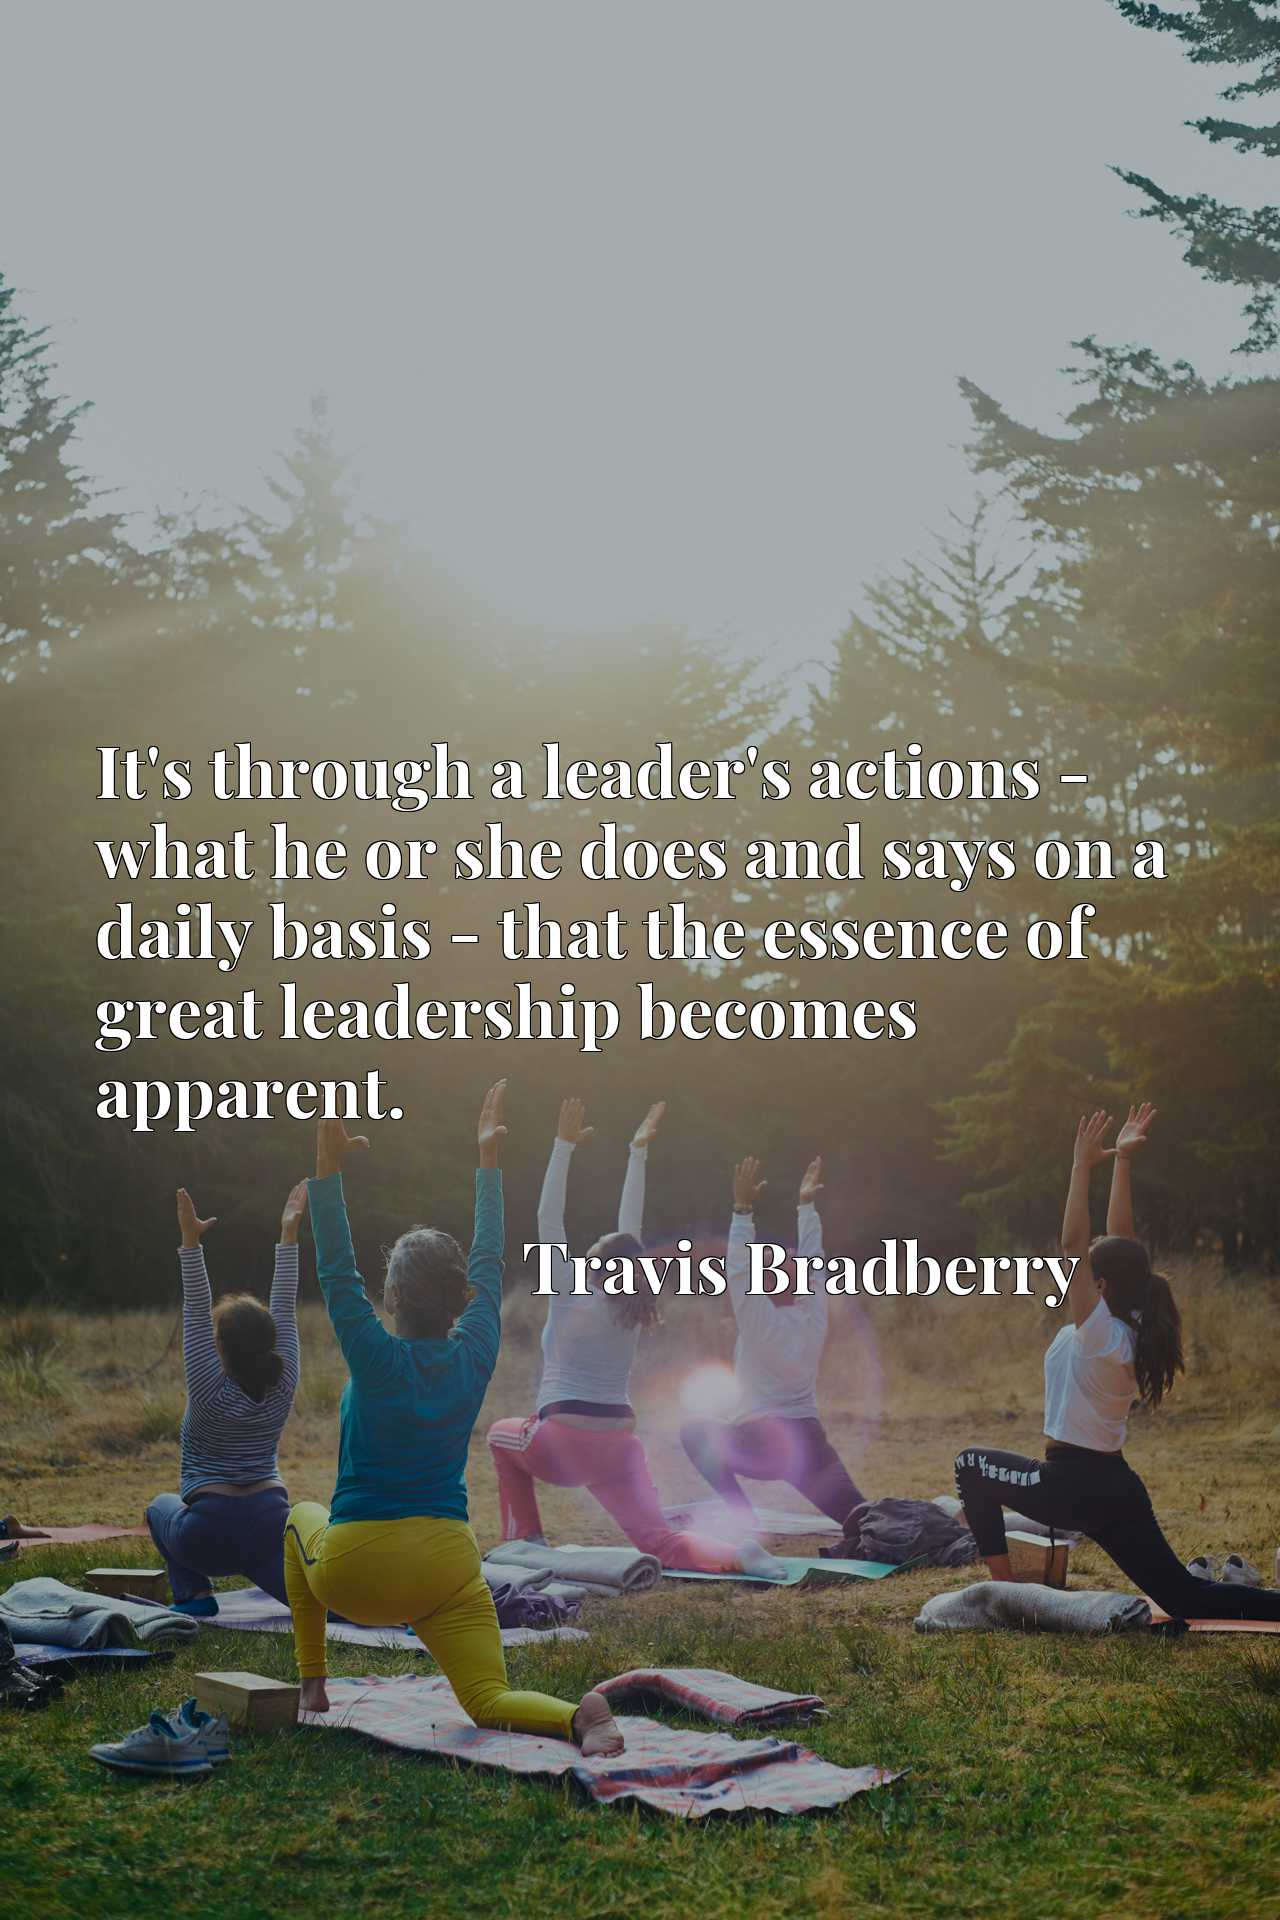 Quote Picture :It's through a leader's actions - what he or she does and says on a daily basis - that the essence of great leadership becomes apparent.